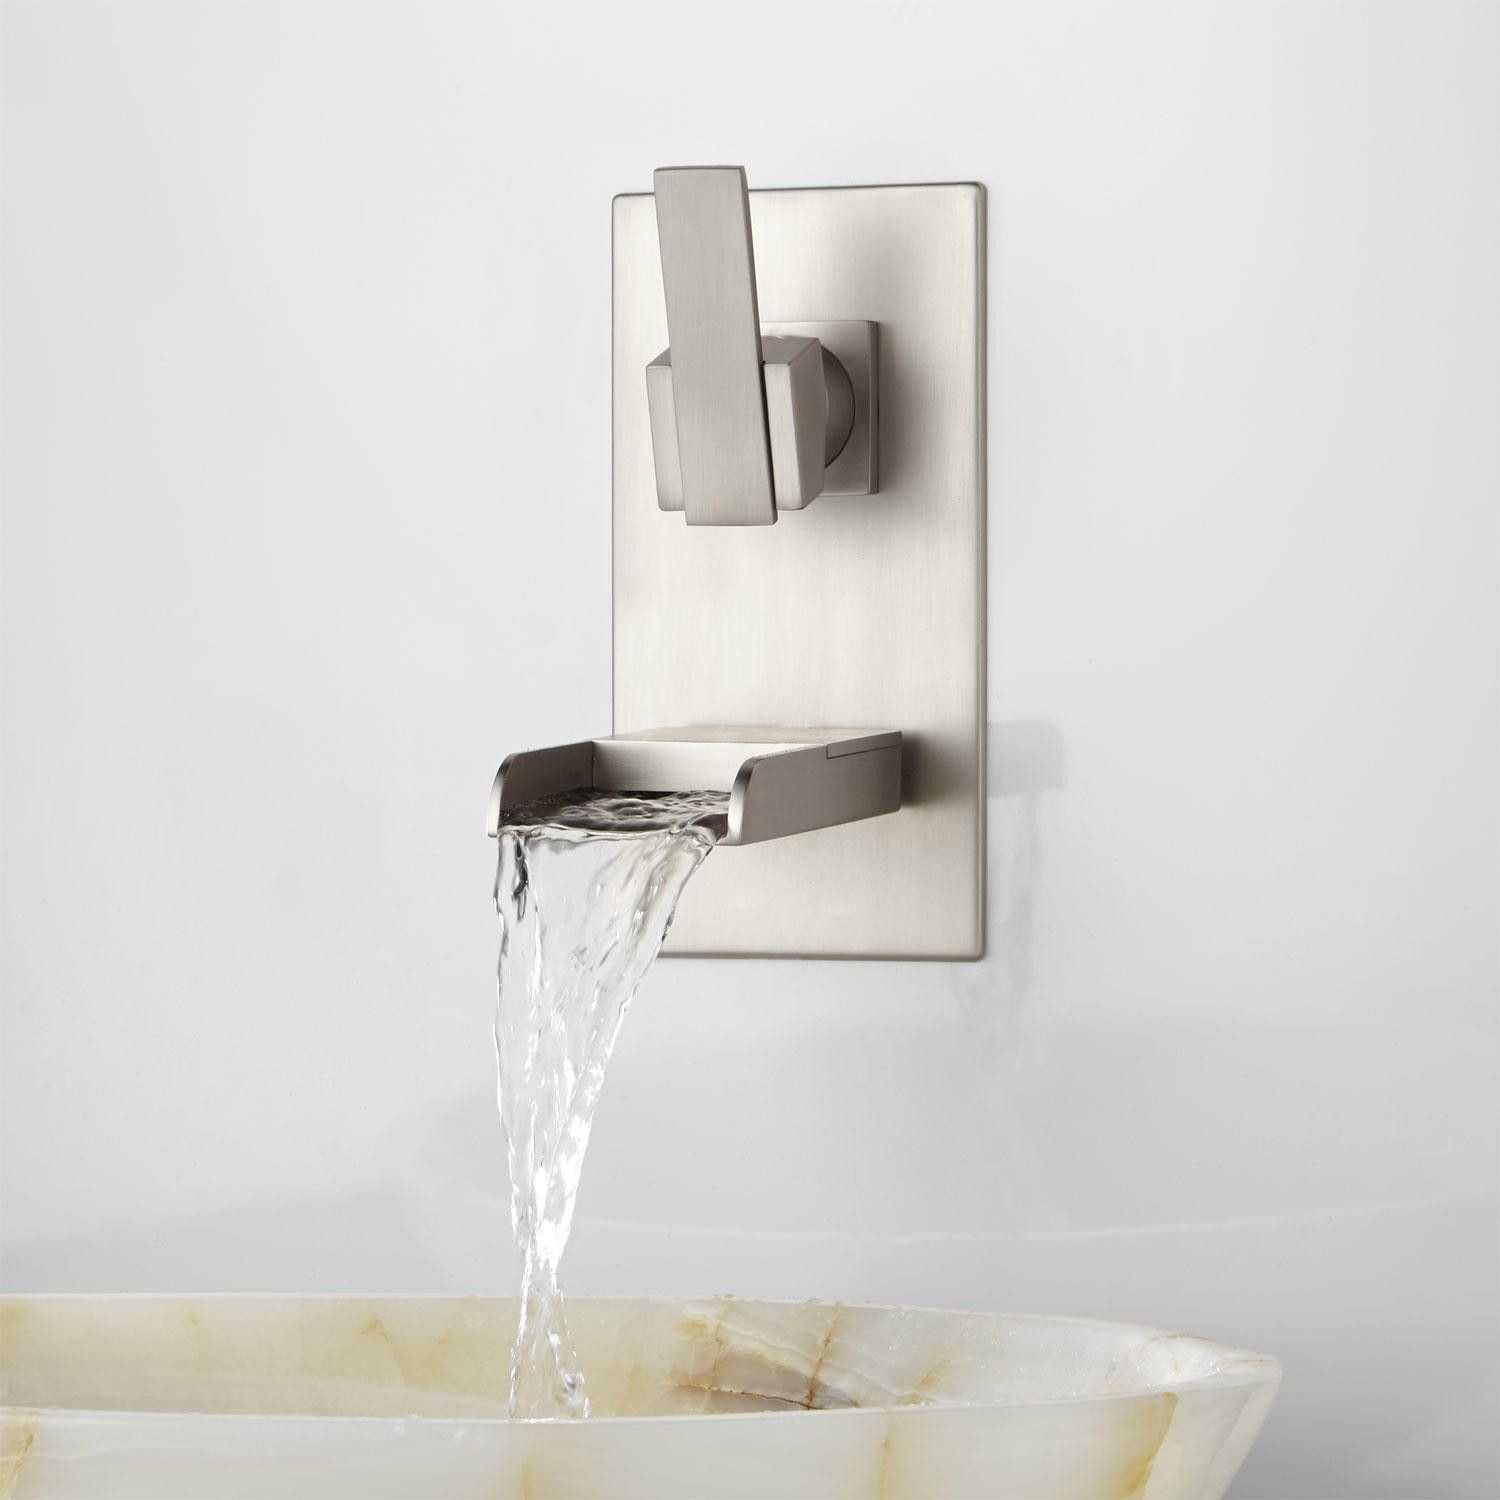 Wall Mounted Waterfall Tub Faucet Brushed Nickel